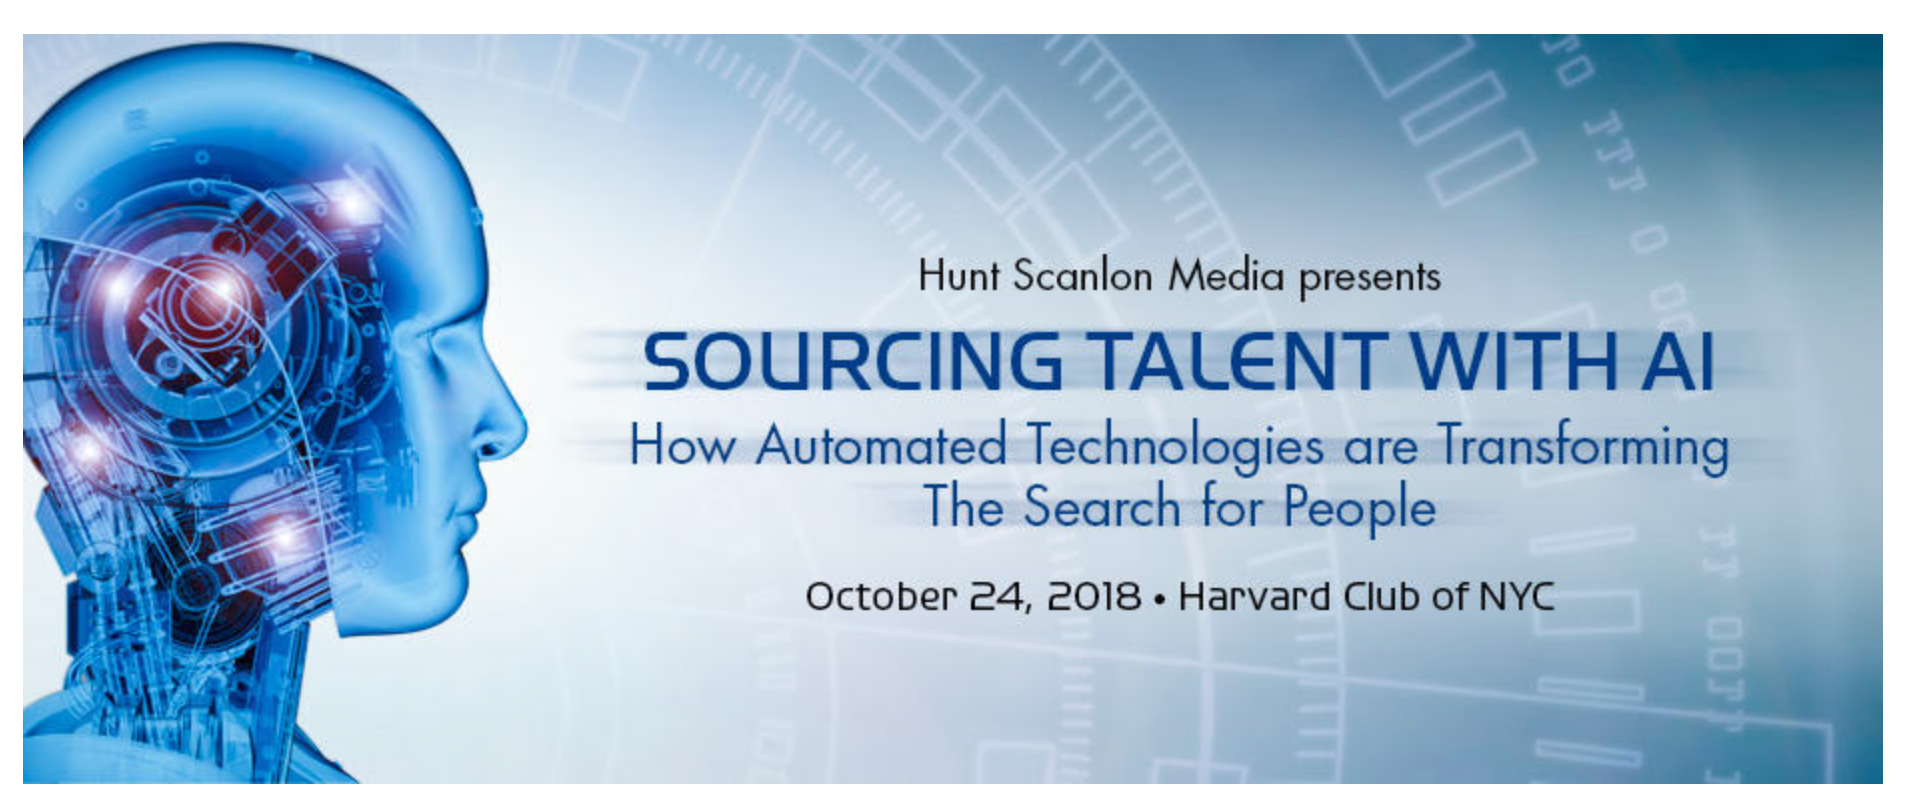 Sourcing Talent with AI